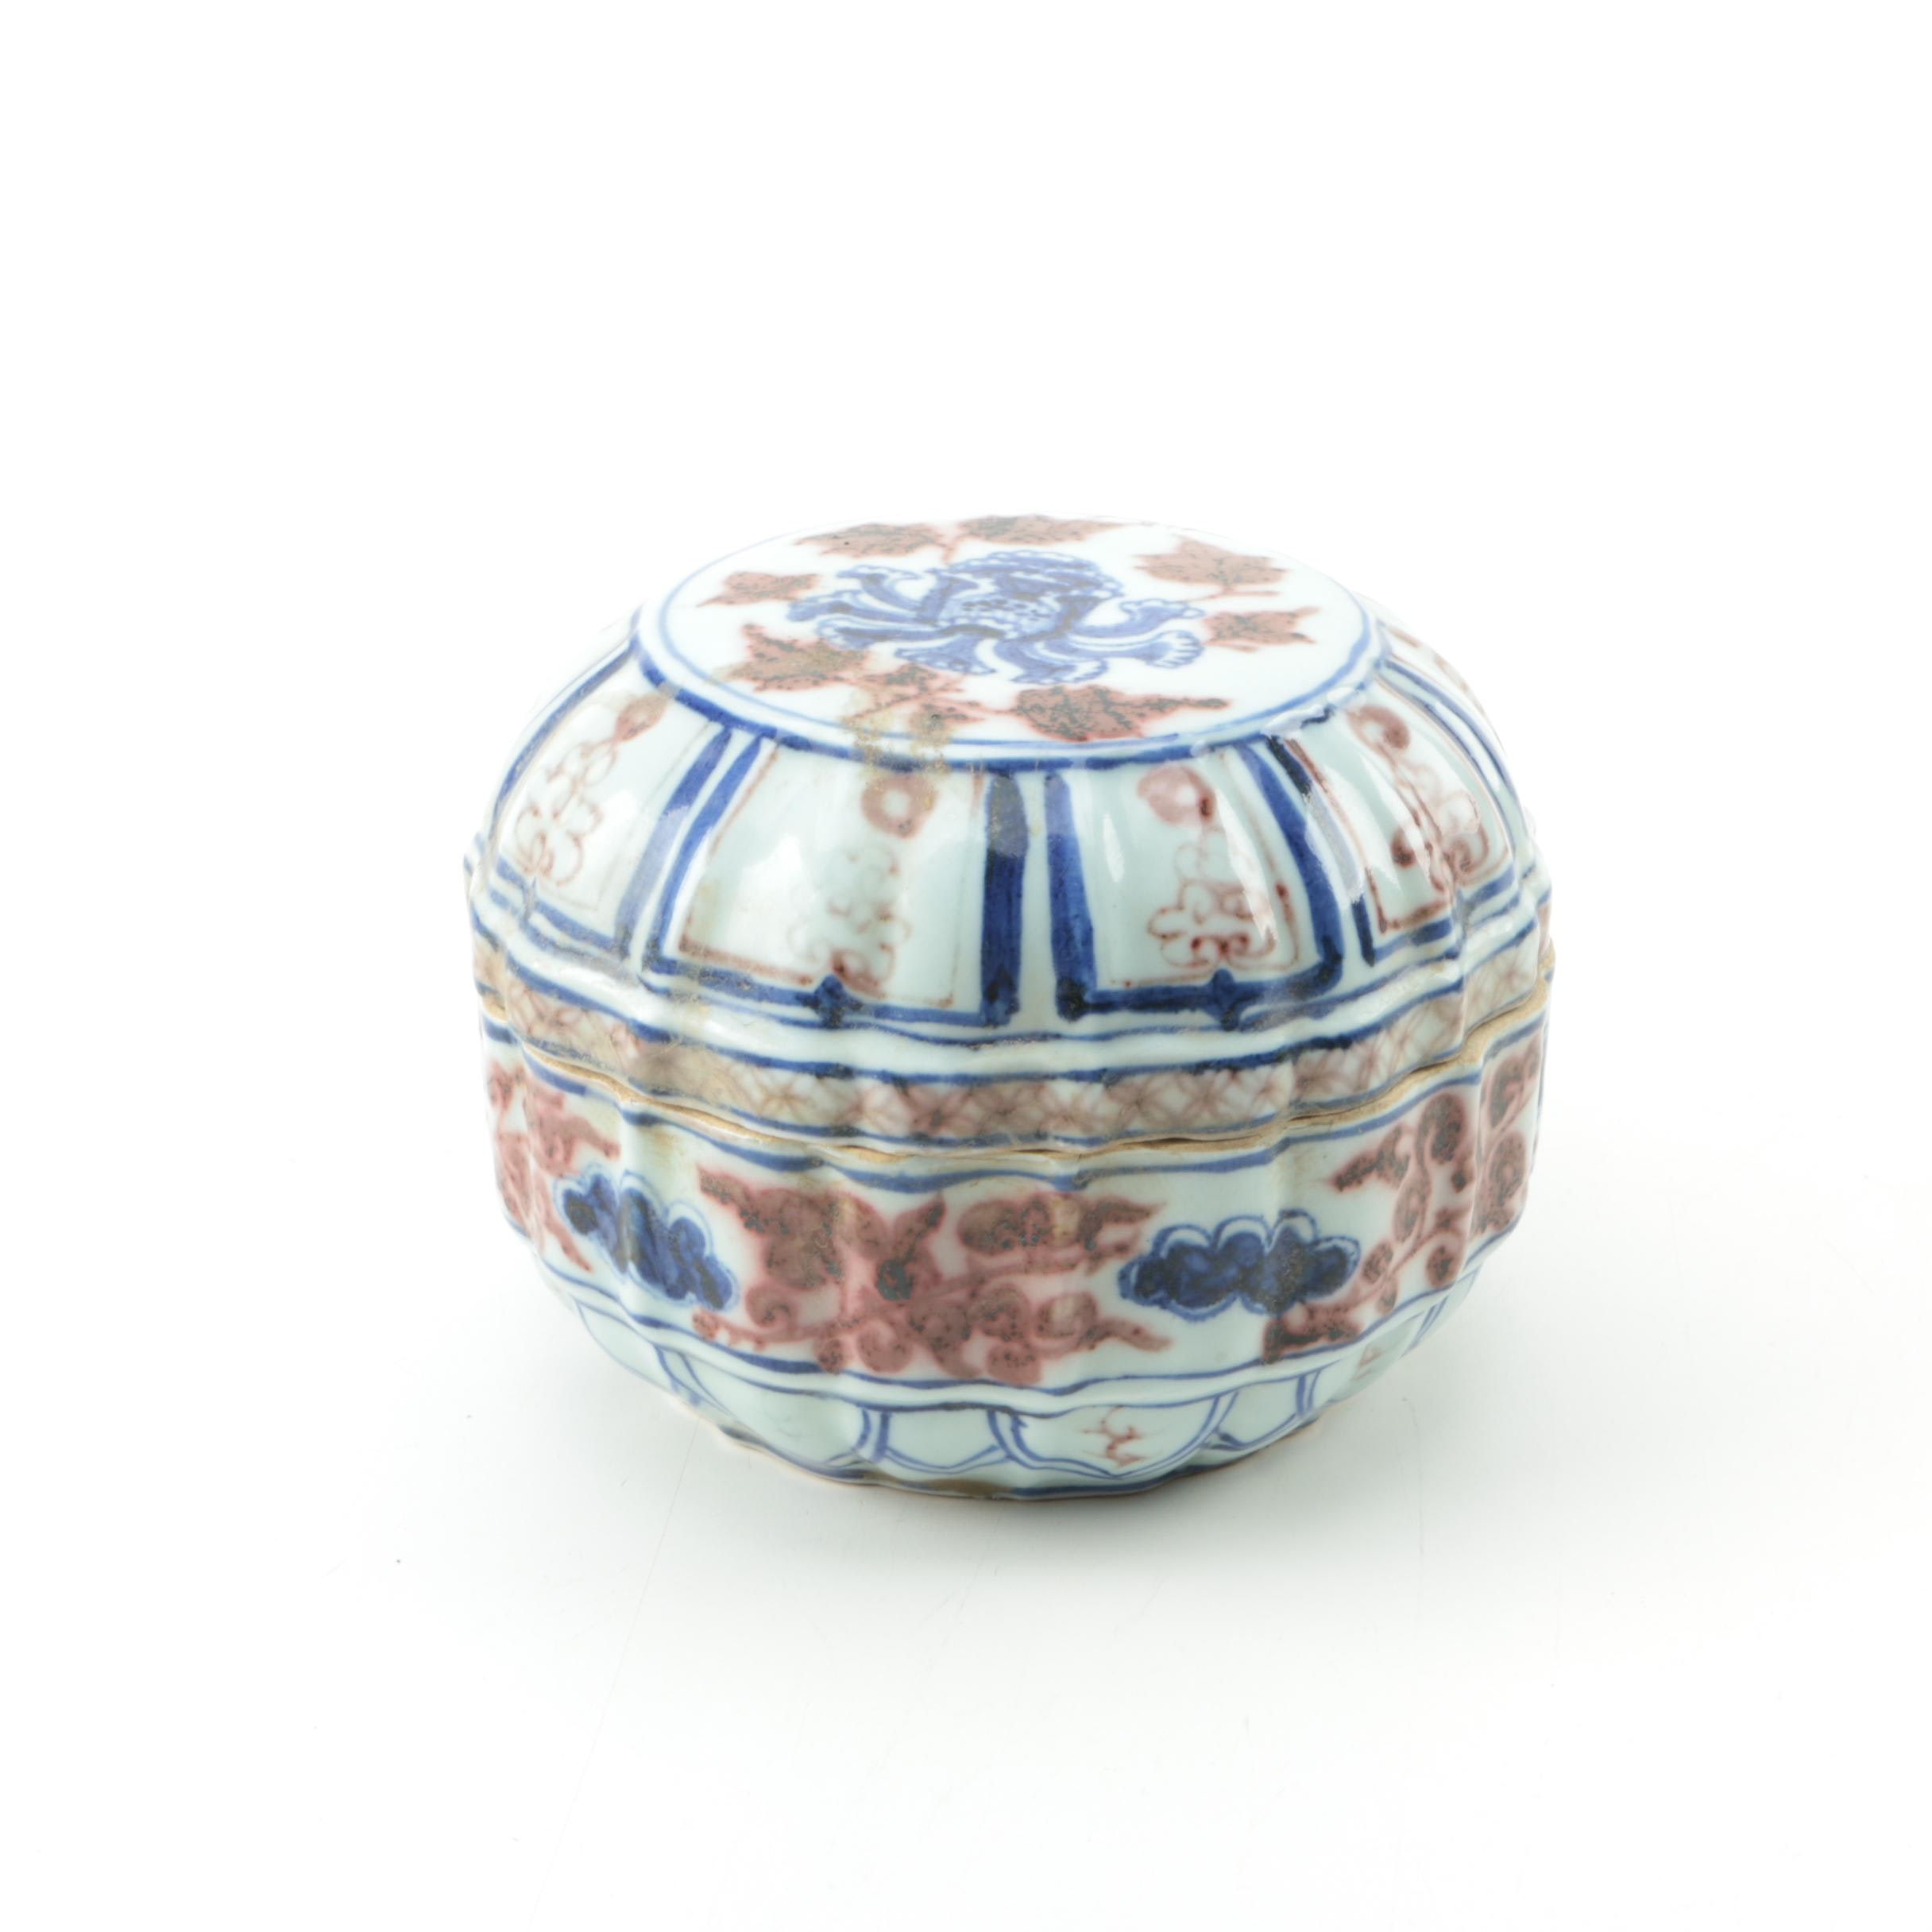 Hand-painted Chinese Ceramic Covered Serving Bowl